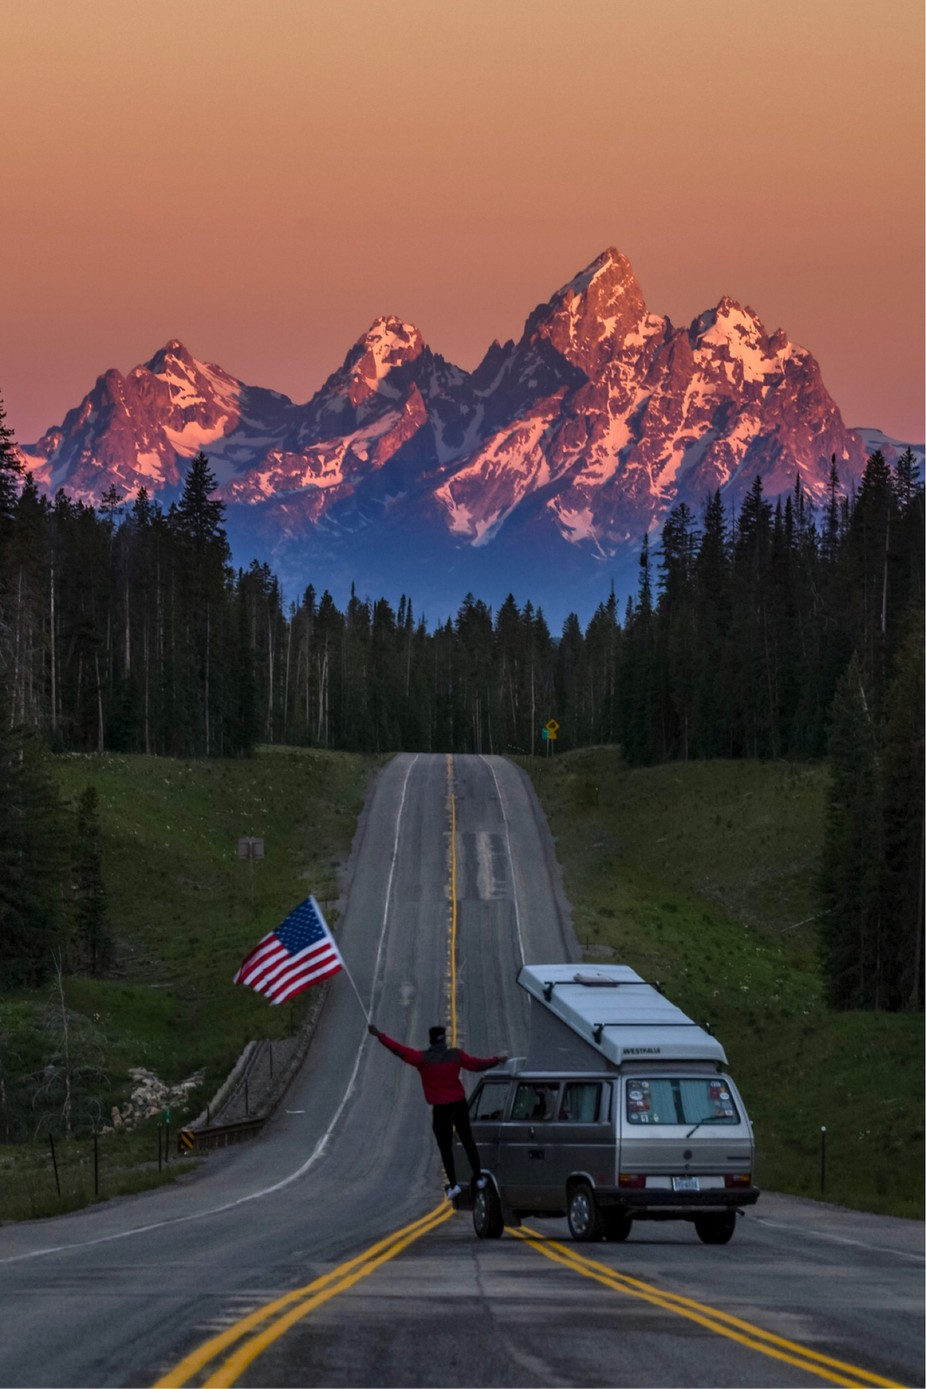 4th of just with purple mountains majesty by nicksgym - Flags and Banners Photo Contest